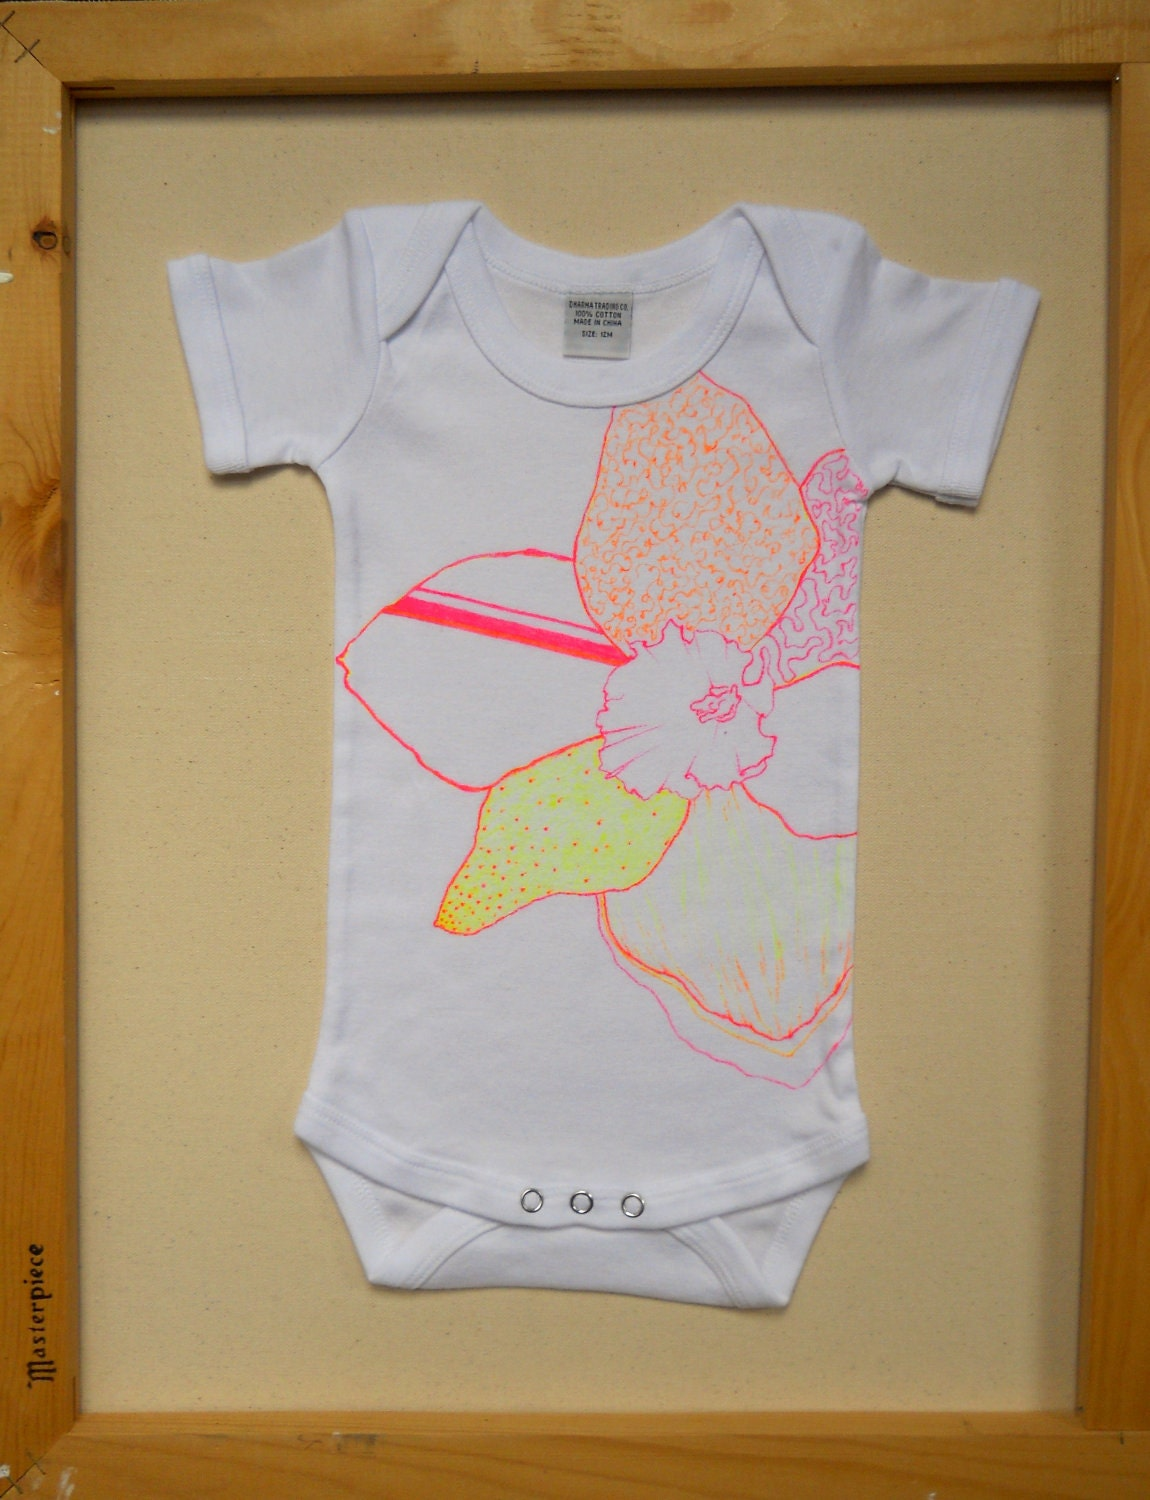 Neon Baby Clothing for Kids & Babies at Spreadshirt Unique designs day returns Shop Neon Kids & Babies Baby Clothing now!